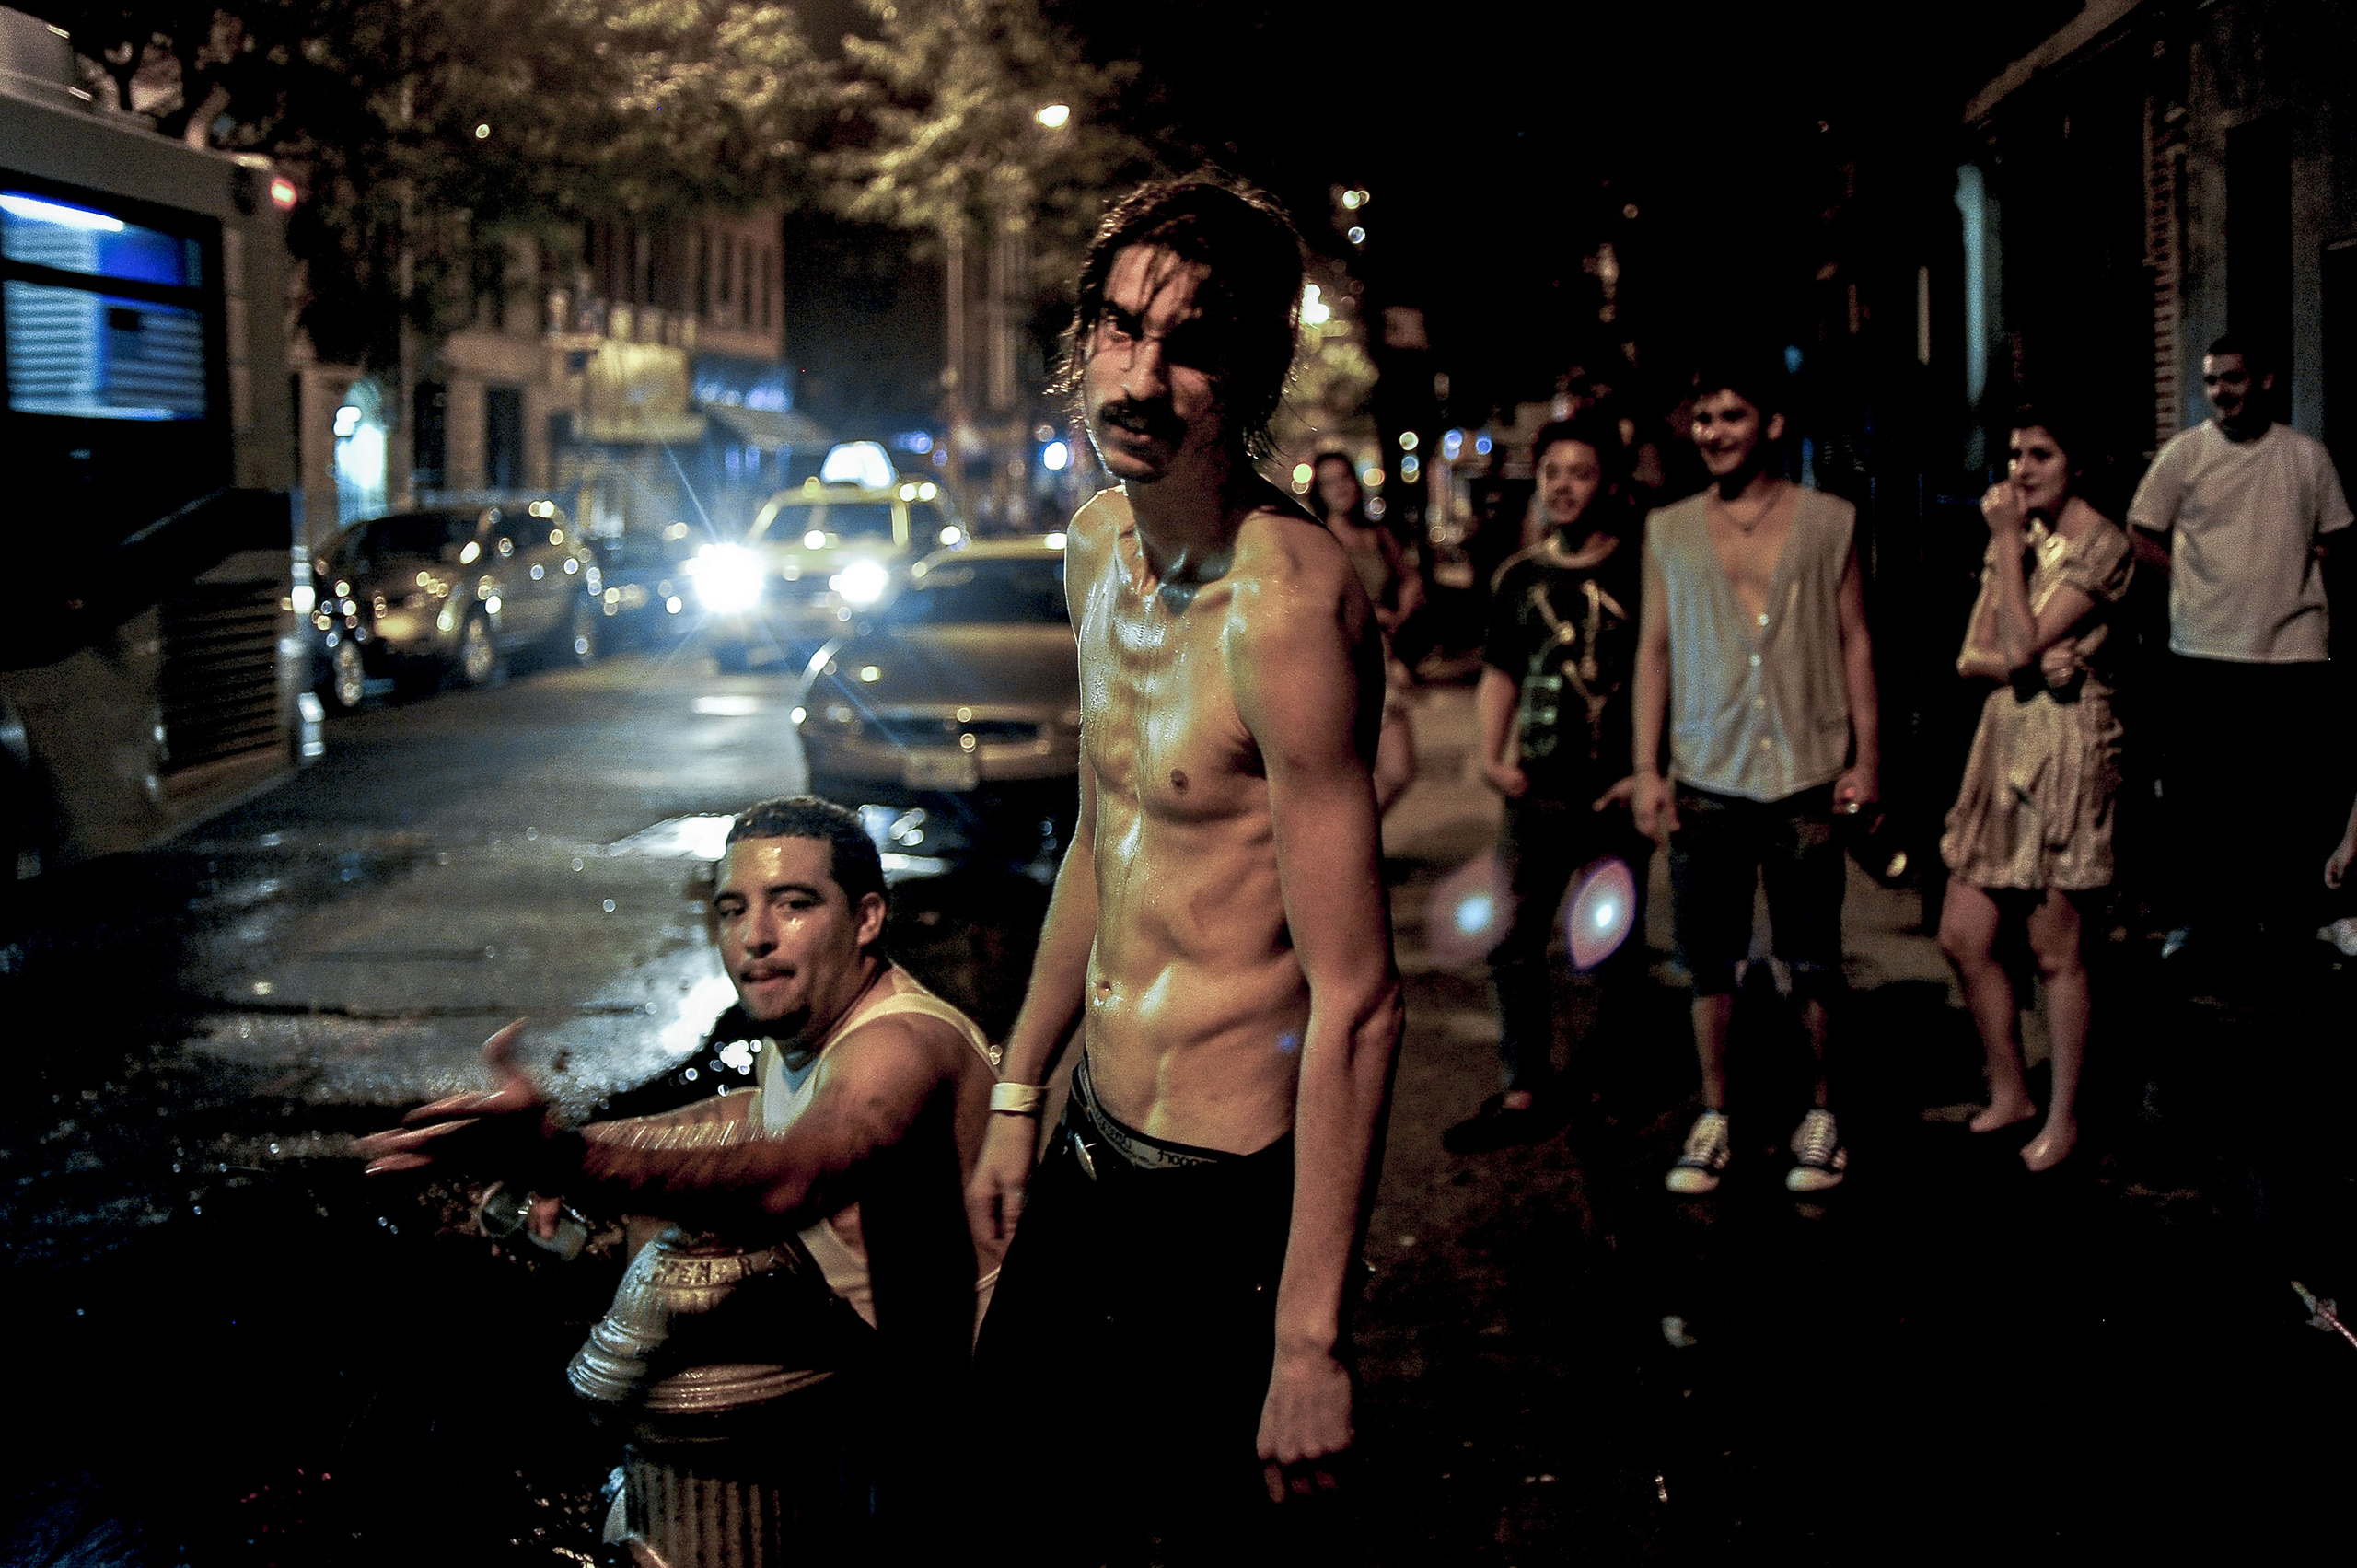 USA. Manhattan, New York. 2010. Playing in a busted fire hydrant on the 4th of July.